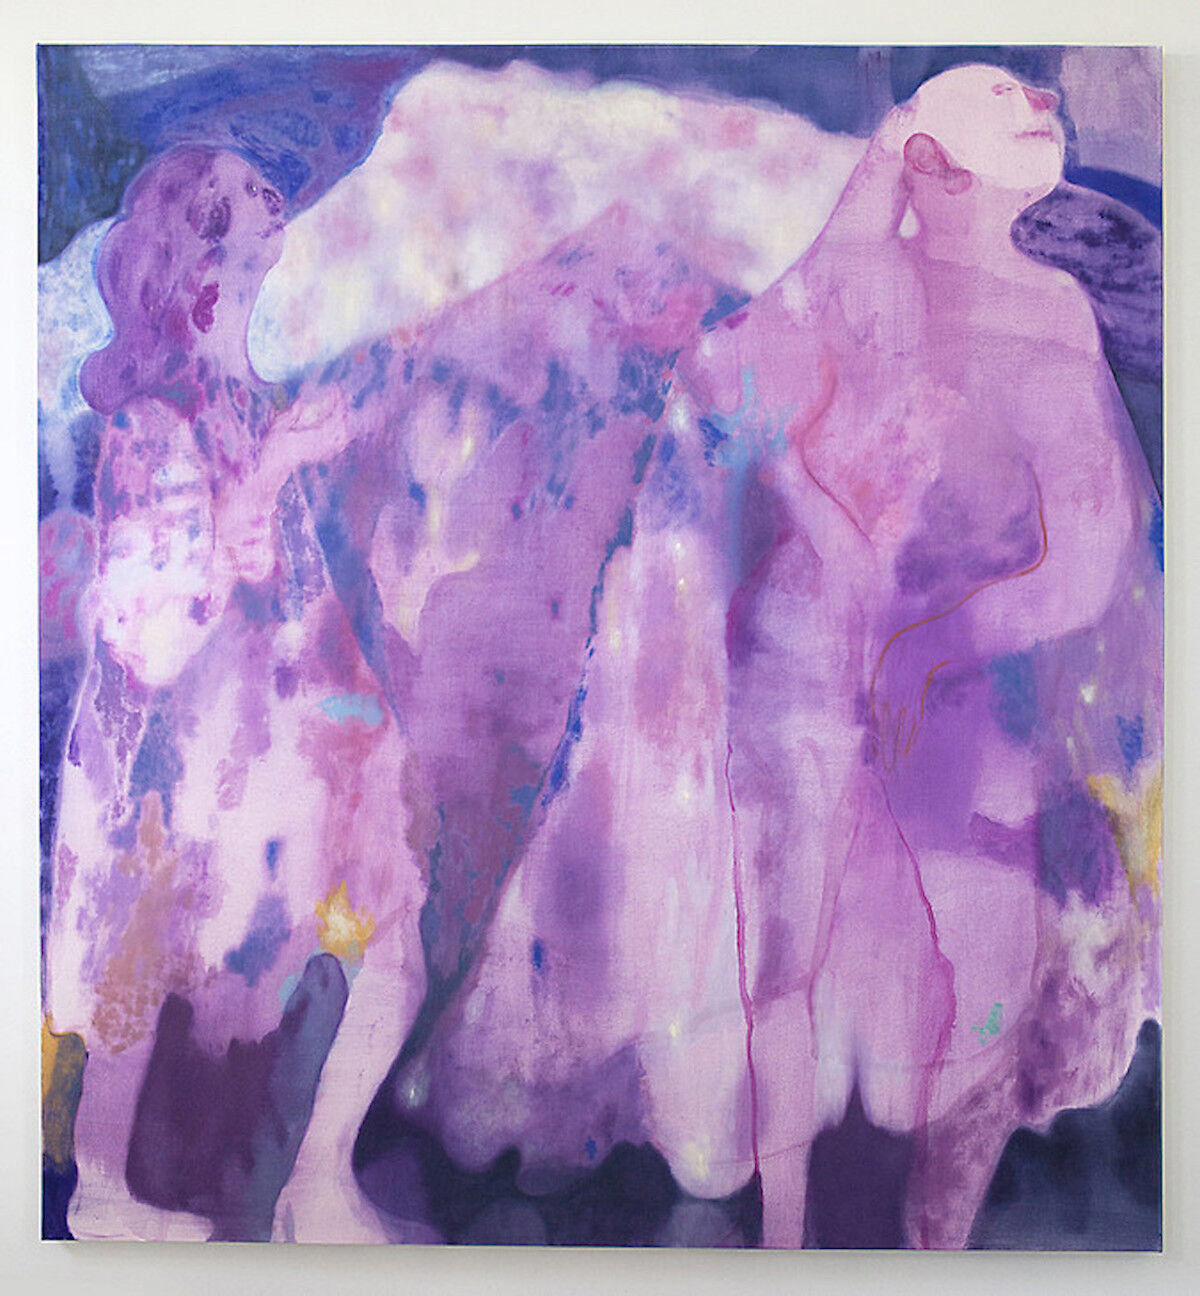 Maja Ruznic, Azmira's Daughters, 2018. Courtesy the artist and Conduit Gallery.